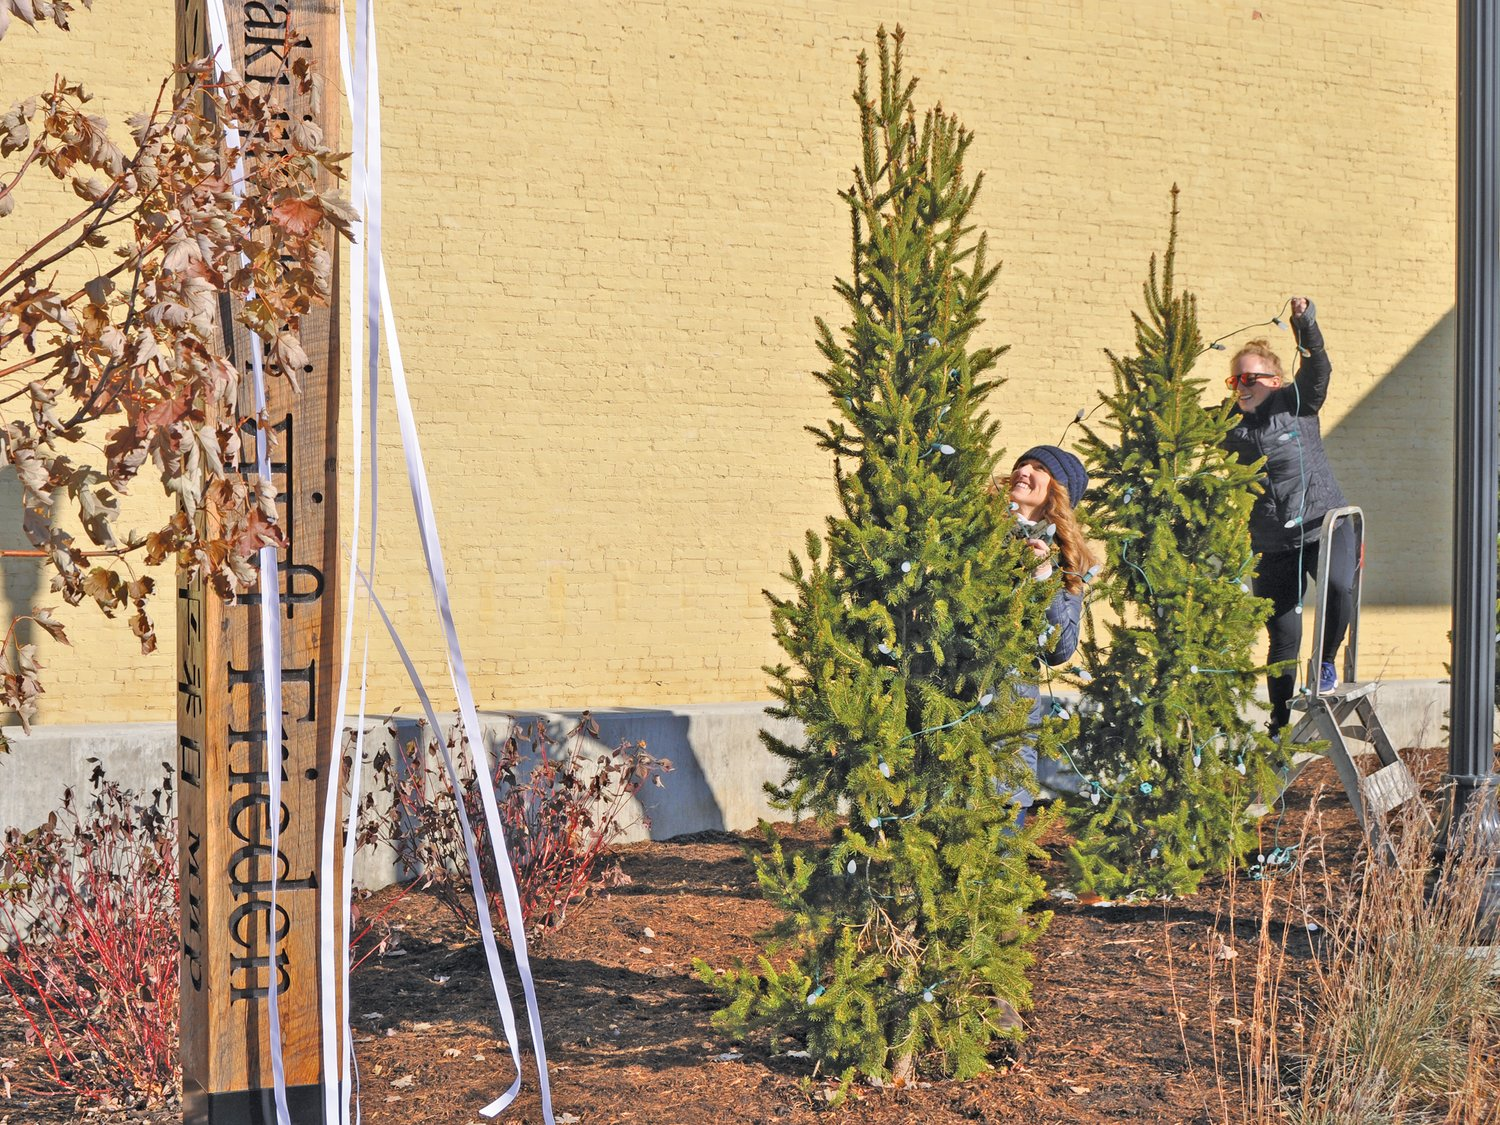 Kim Clark, front, and Lindsey Hamilton hang Christmas lights on trees Friday at Pike Place. Crawfordsville Main Street decorates downtown public places for the holiday season. A Montgomery County Community Foundation grant funded the Pike Place decorations. Volunteers interested in joining the decorating crew should contact Main Street.